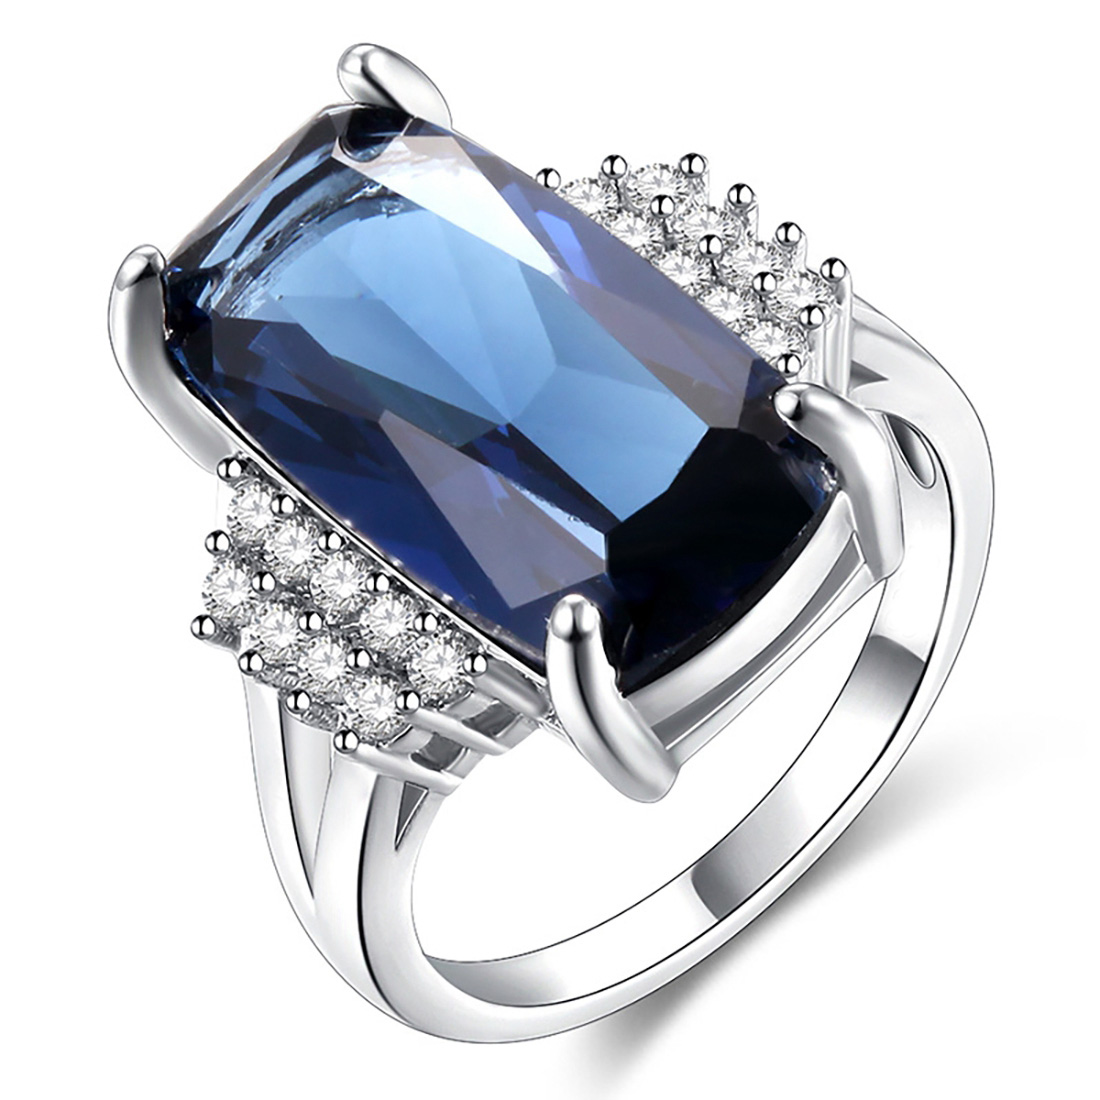 Fashion big stone ring New Big Stone Ring Products Latest Trending Products